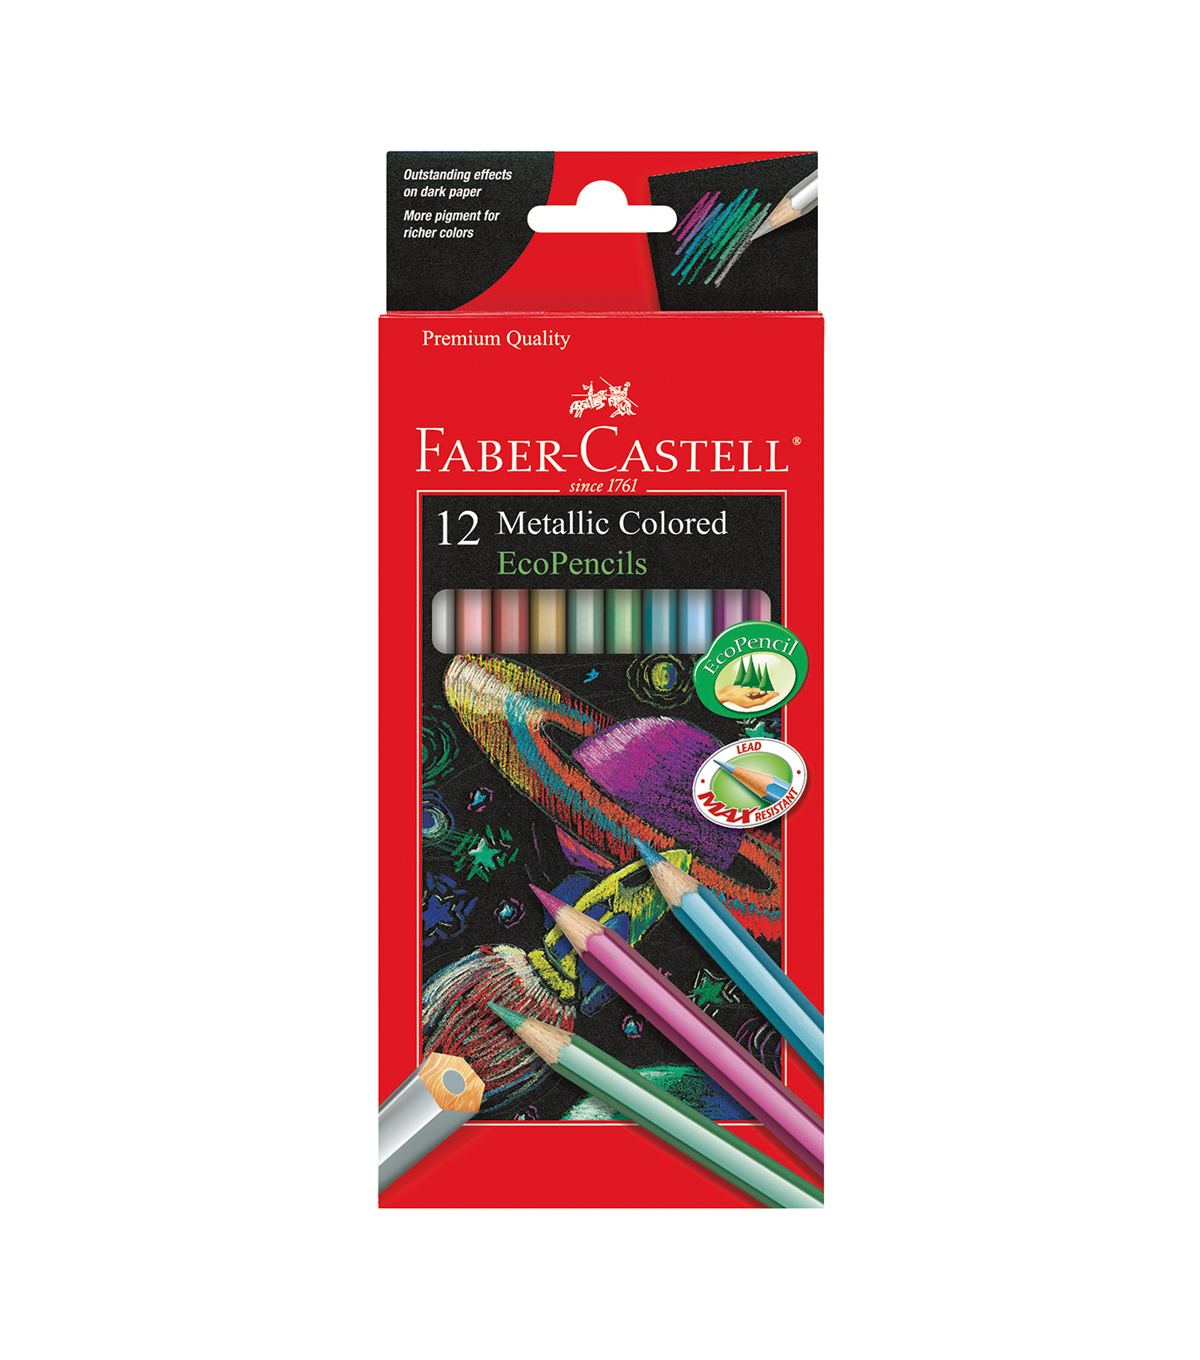 Faber-Castell 12 pk EcoPencils-Metallic Colored